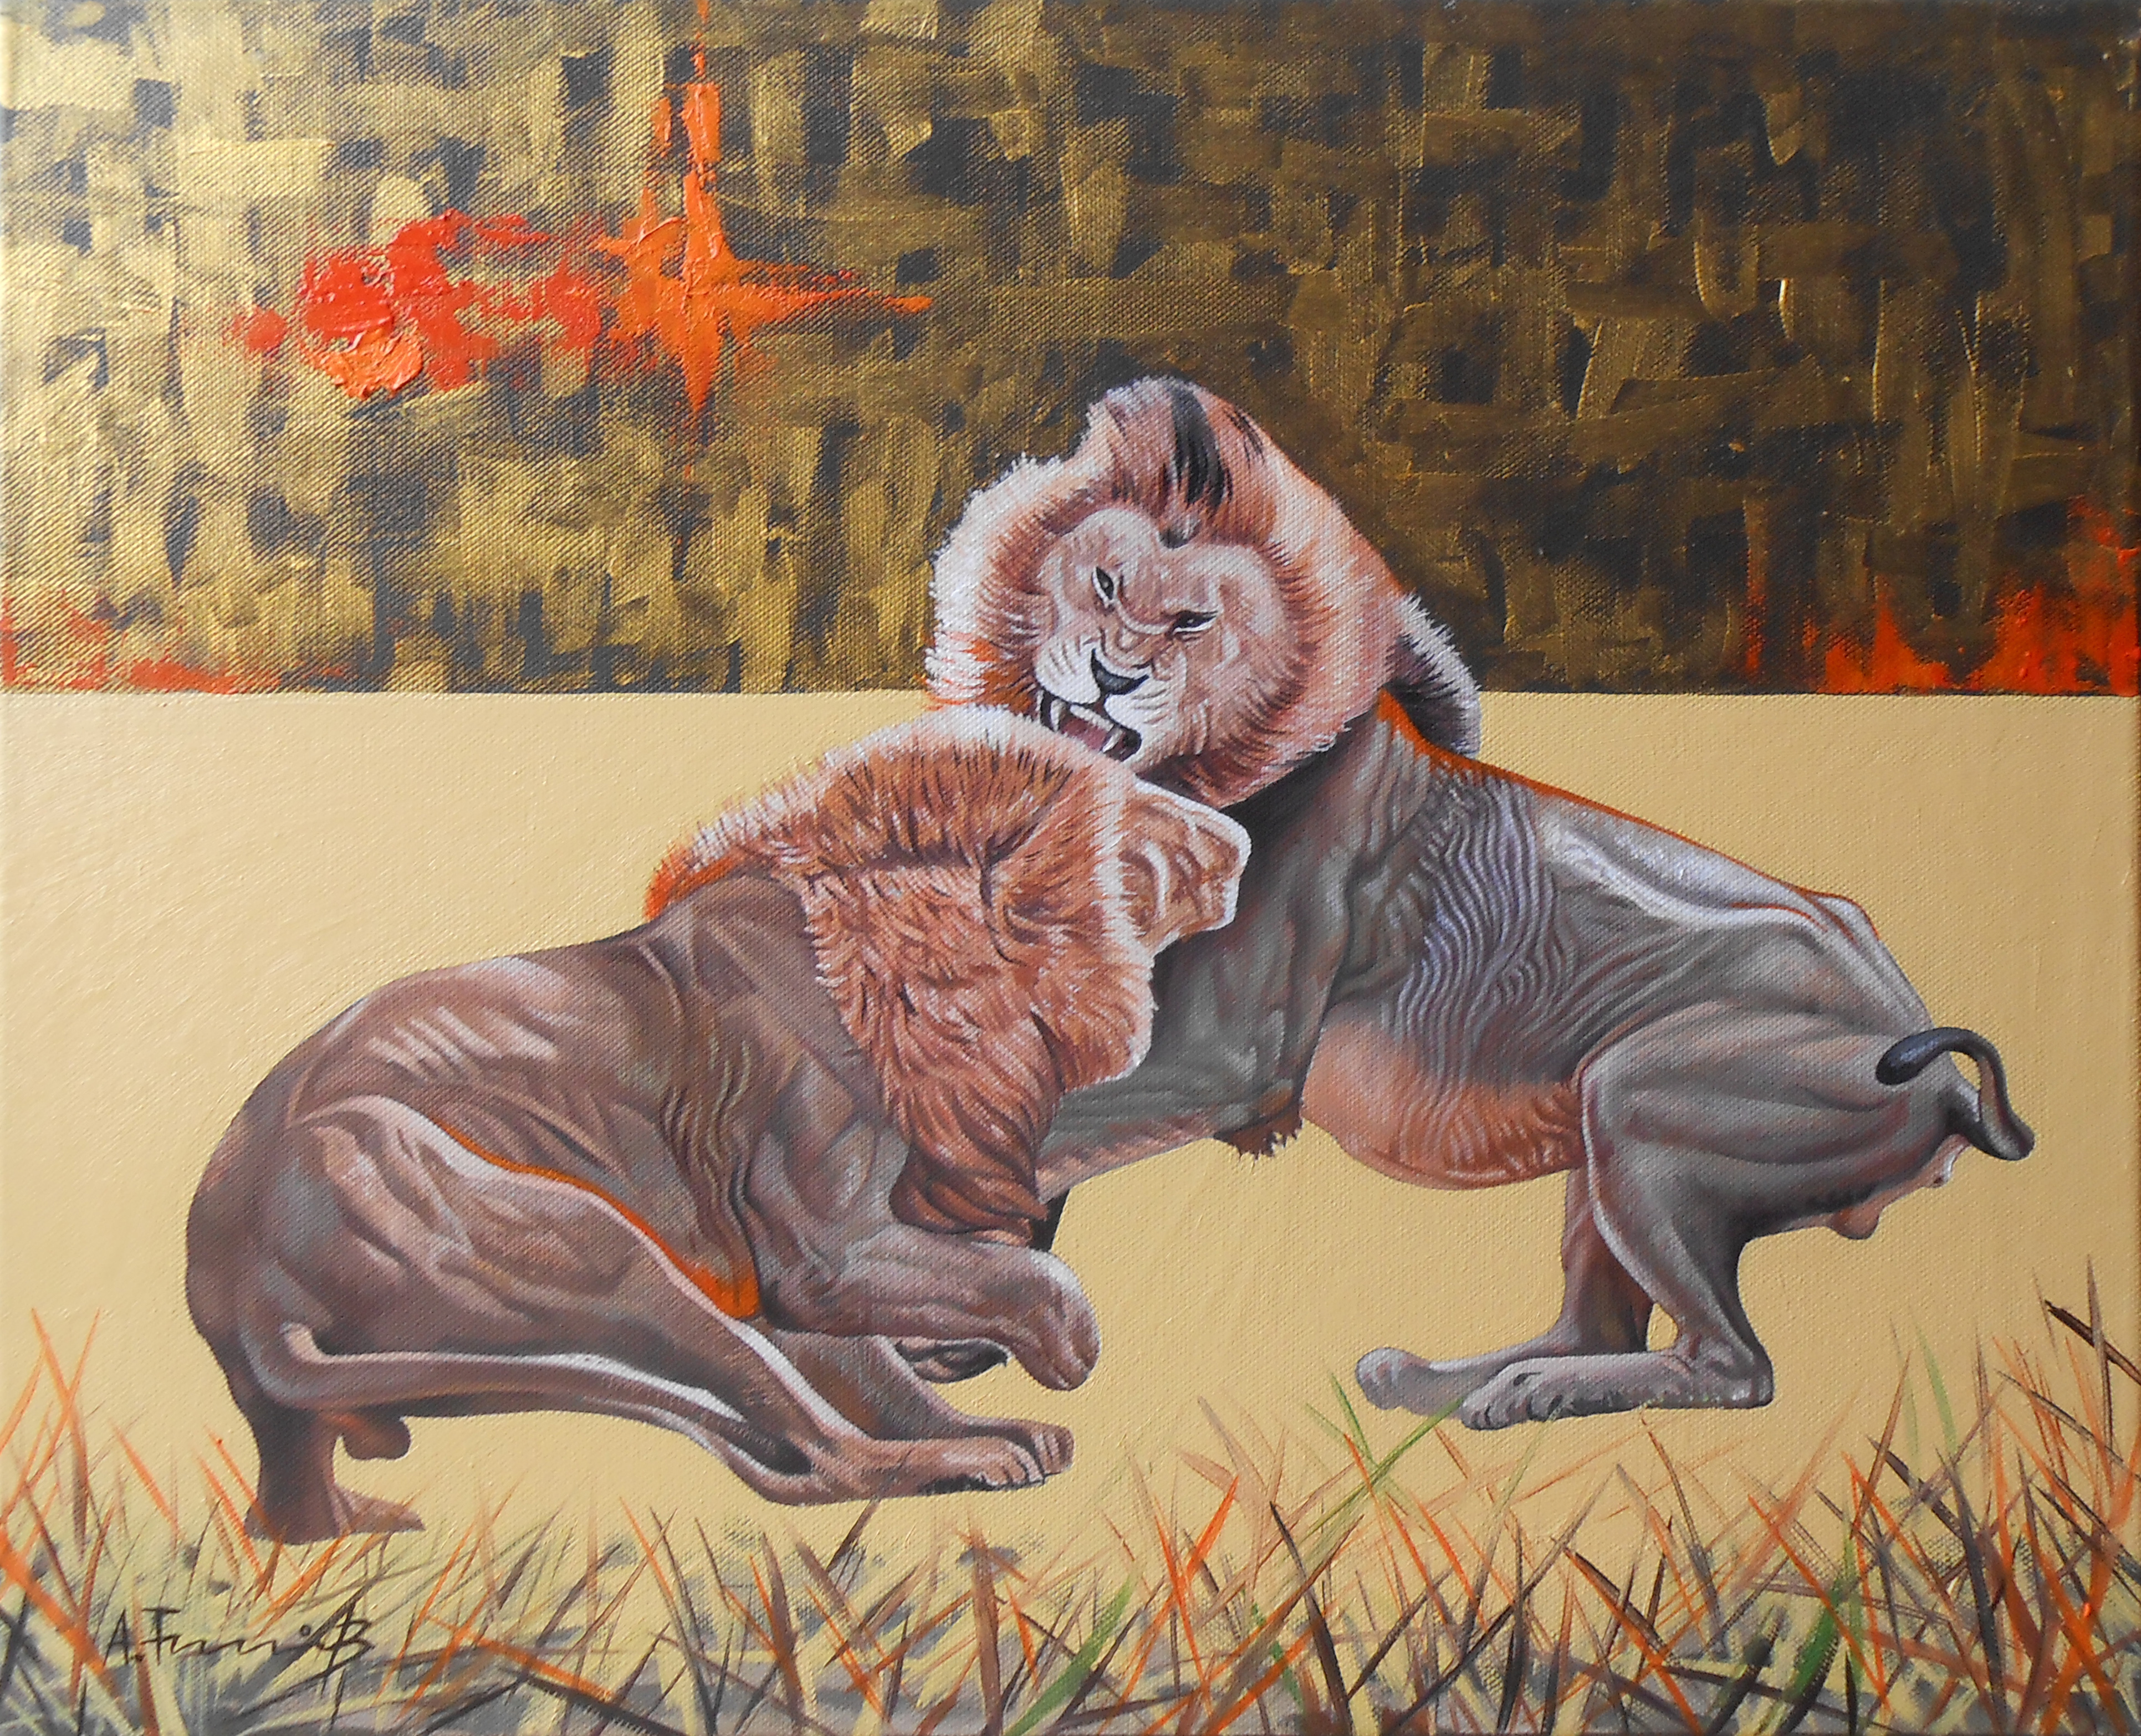 Lions Fighting 3